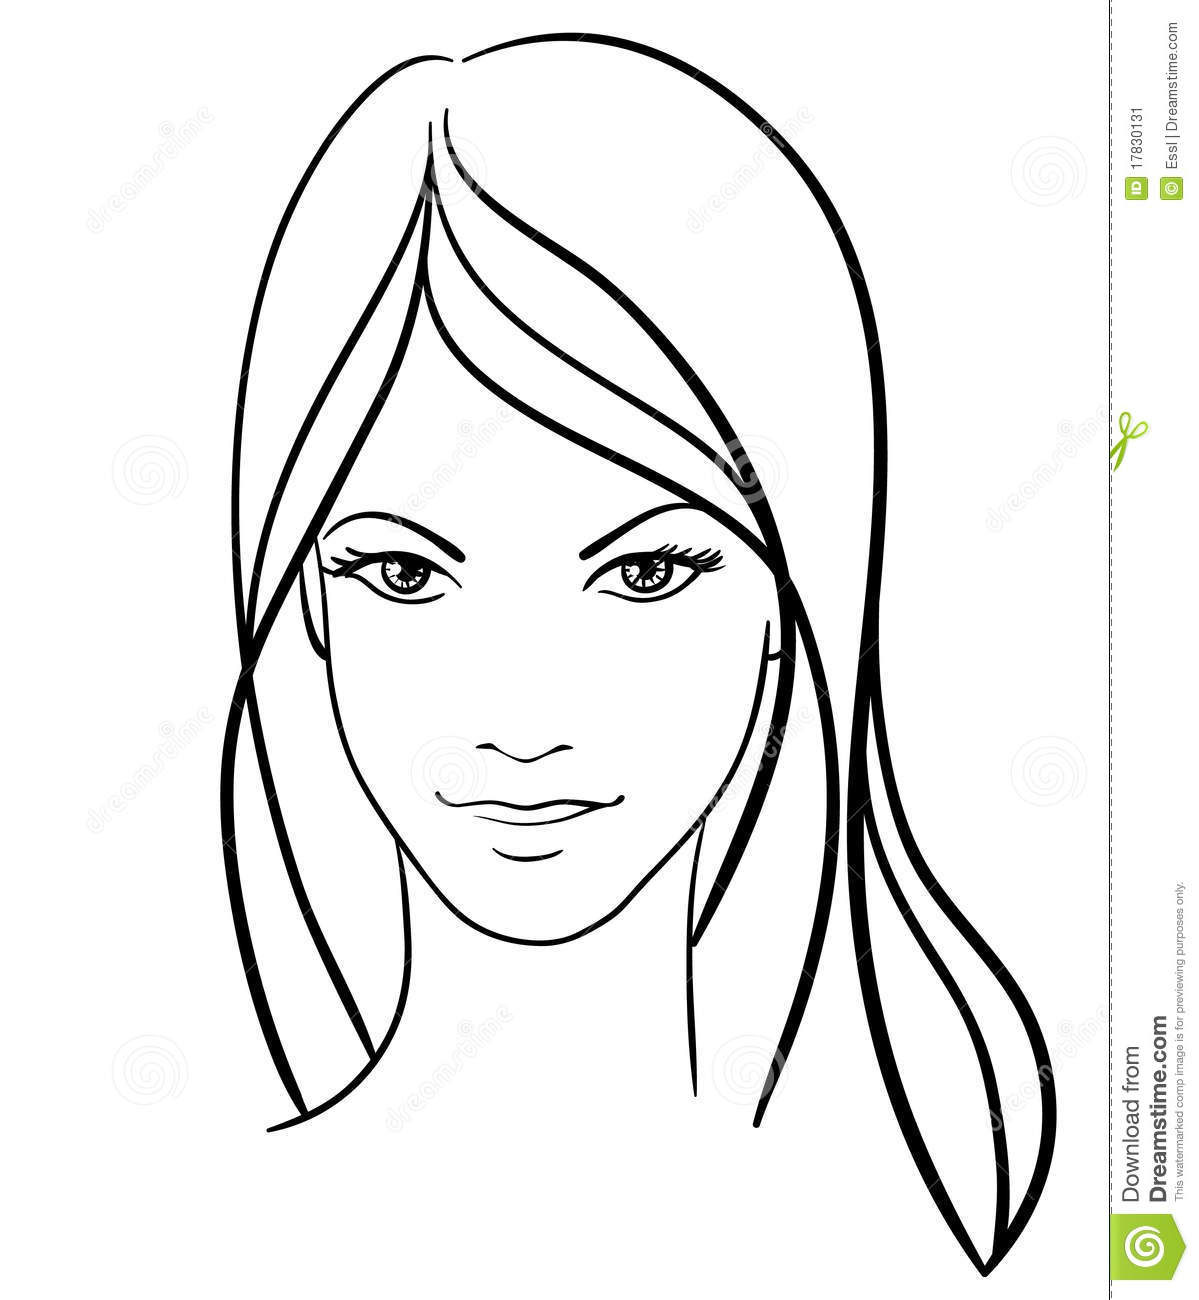 1199x1300 Simple Girls Drawings Beauty Girl Face Icon Stencil Ideas